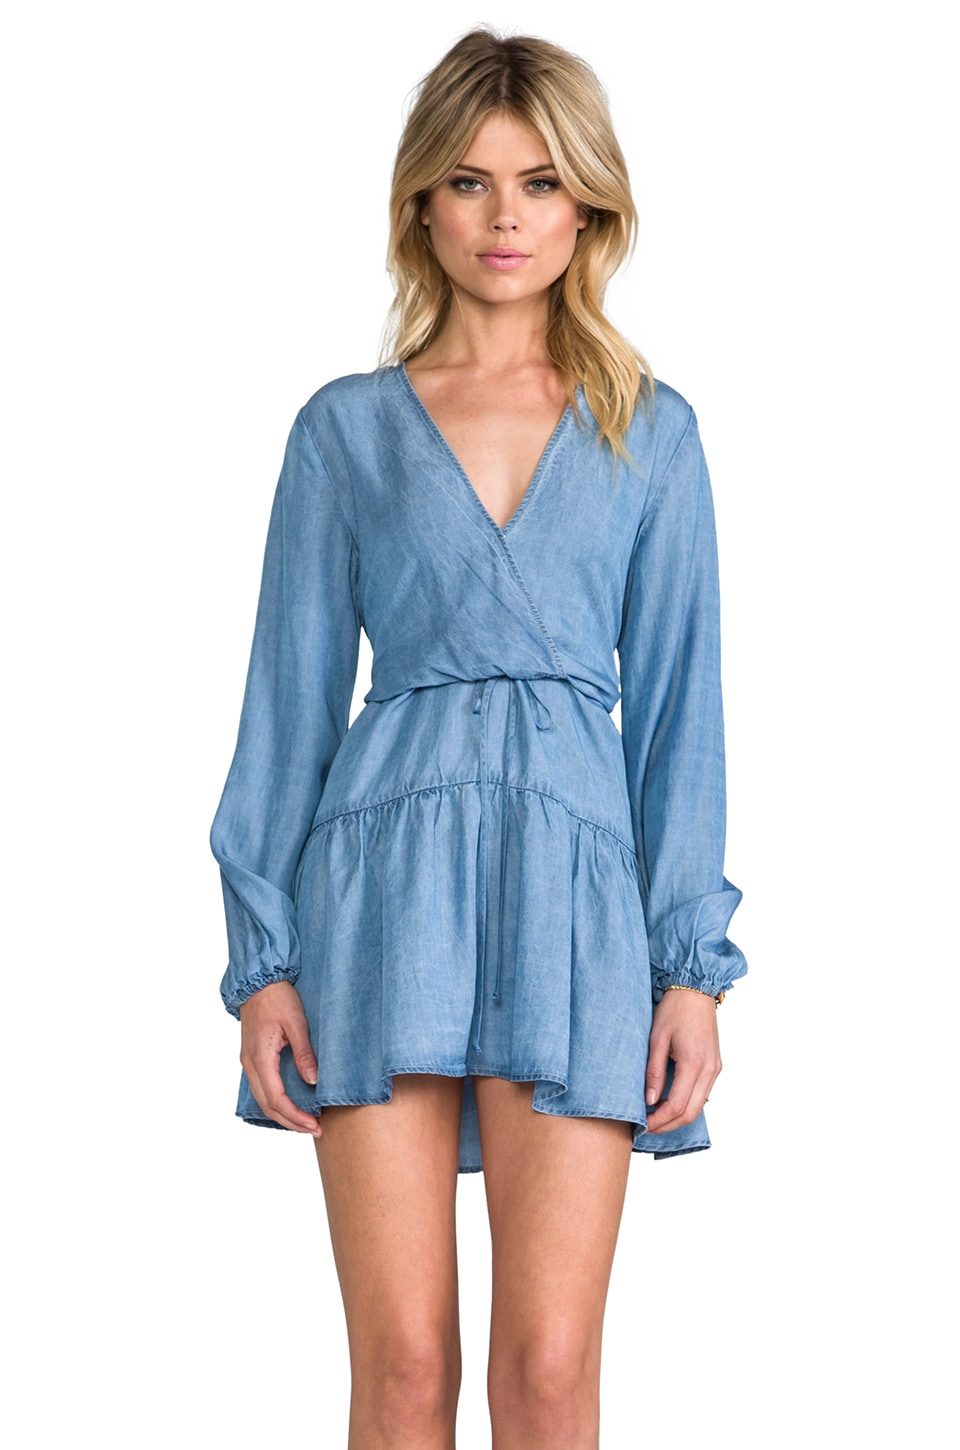 SAM&LAVI Savannah Dress in Chambray